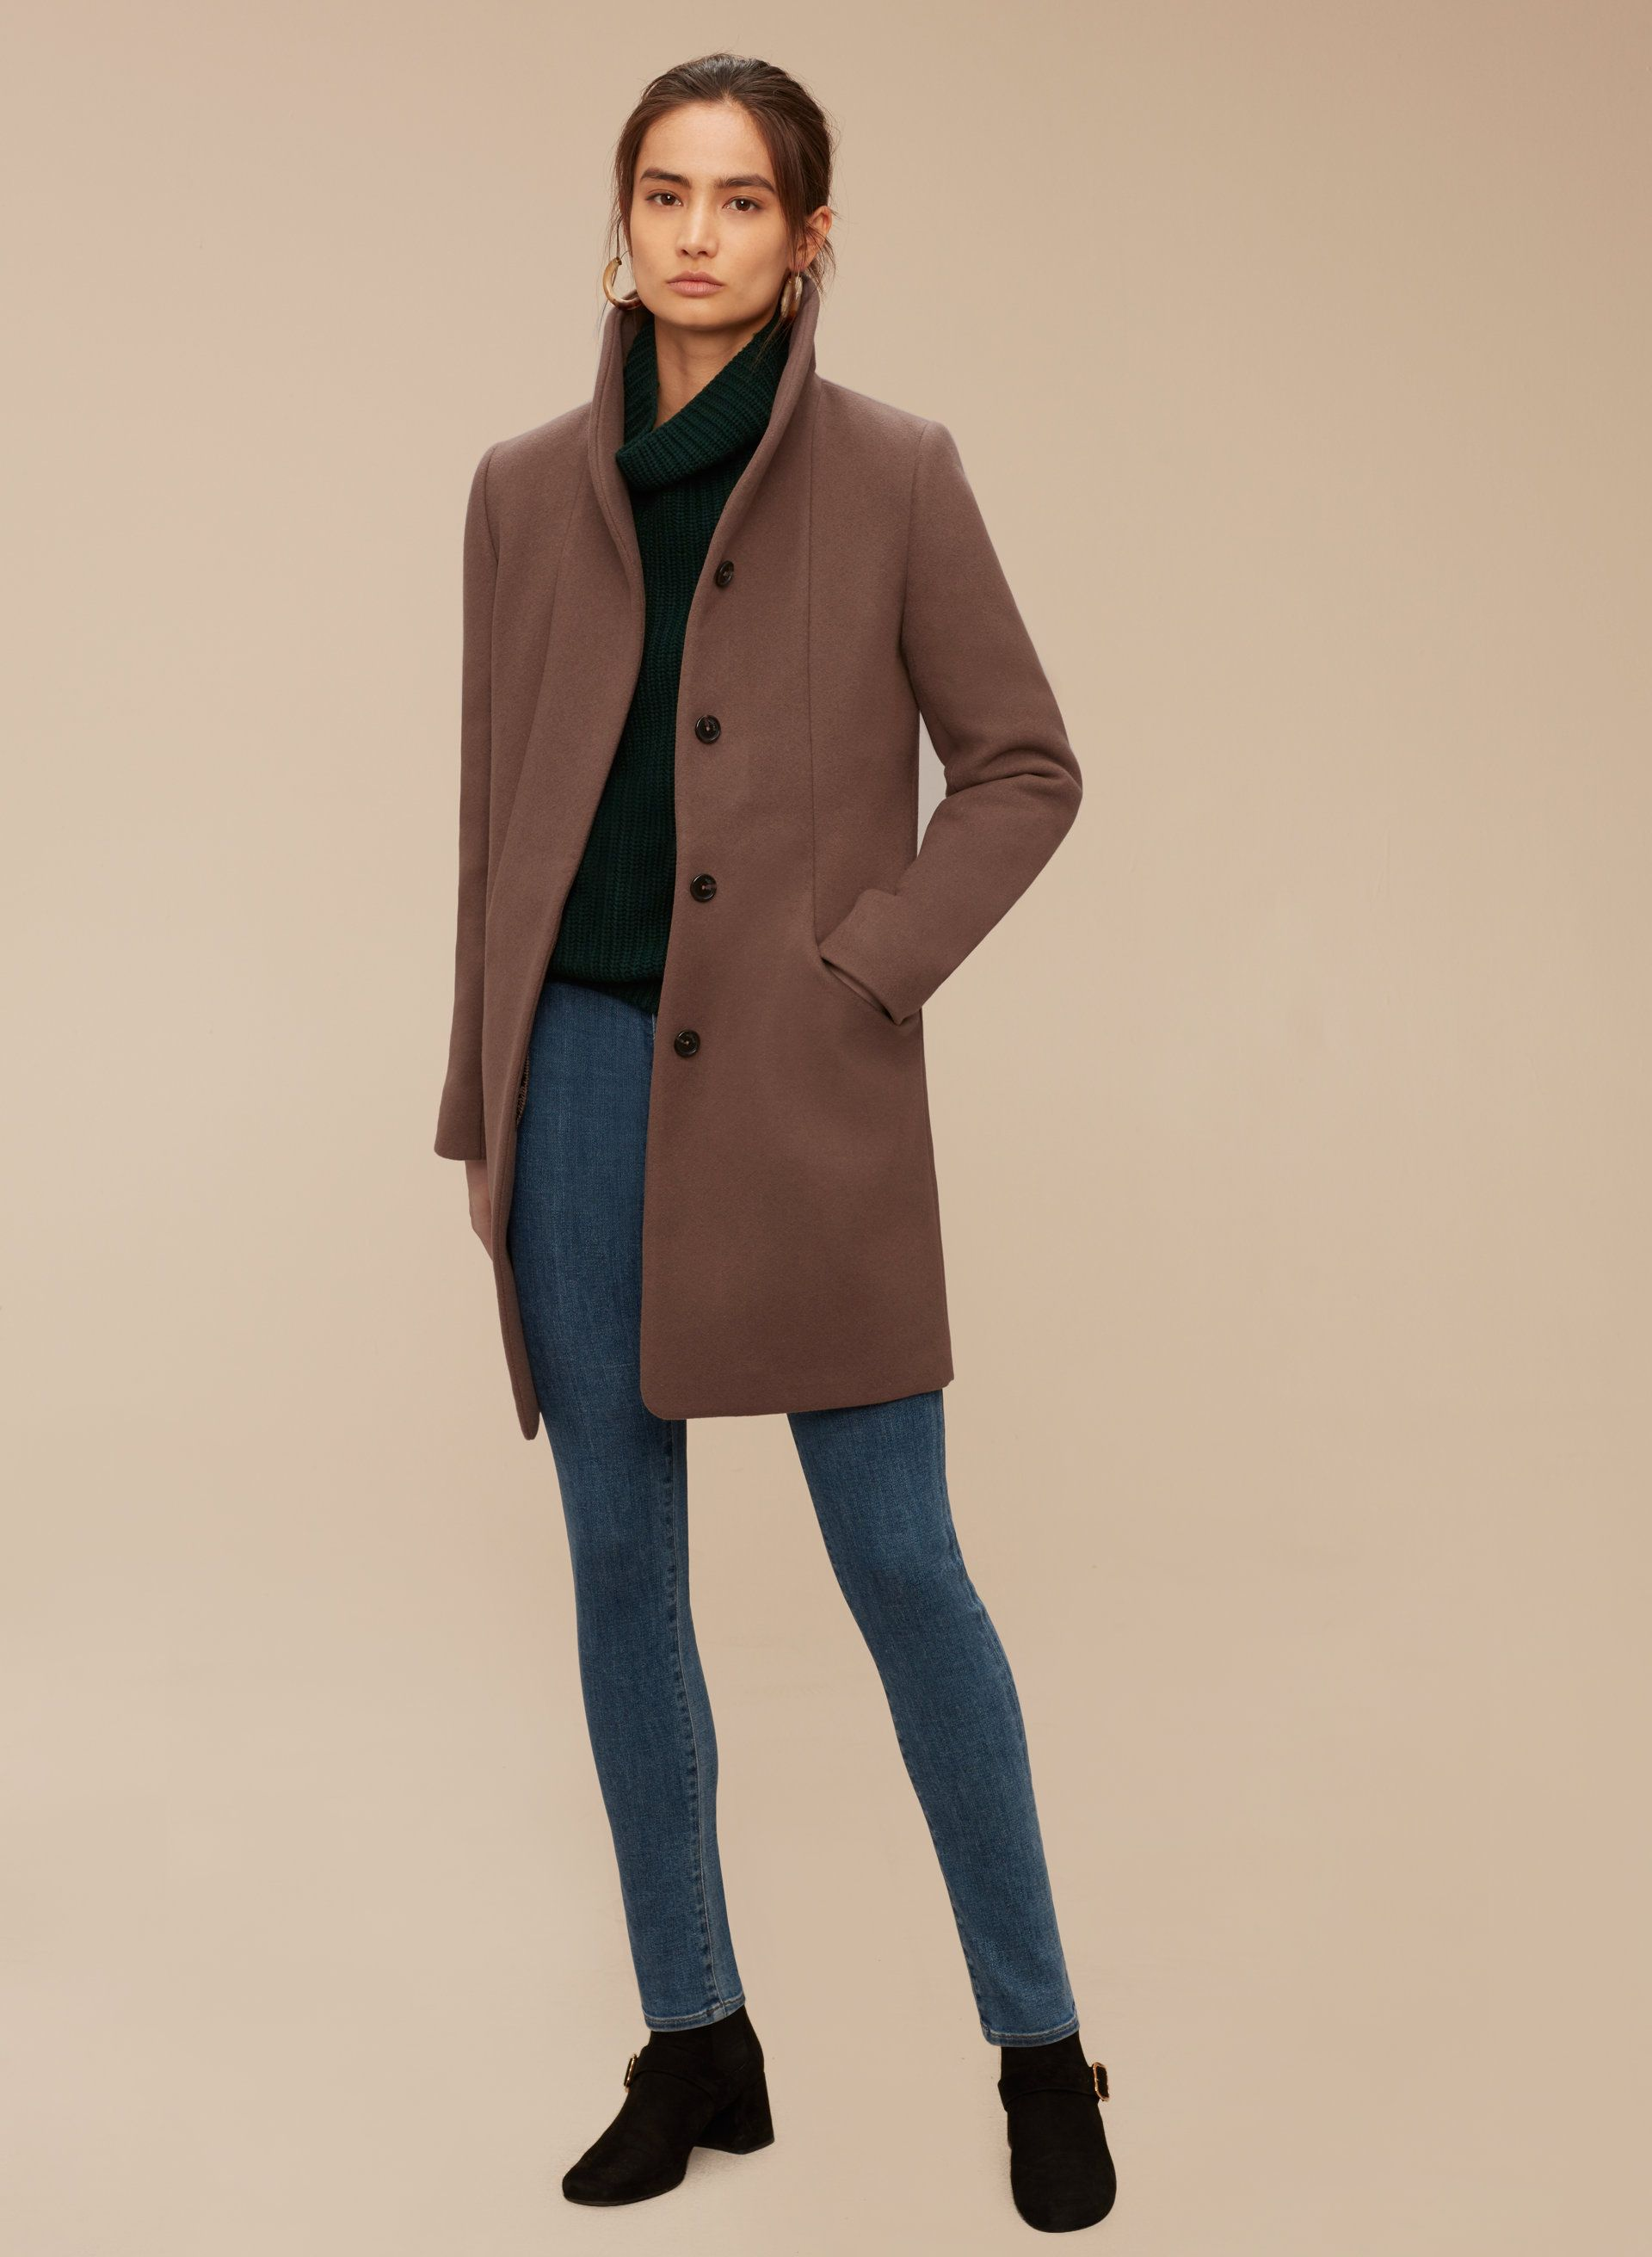 02ca503835df6 Cocoon coat   Stitch Fix   Pinterest   Coat, Fashion outfits and Fashion